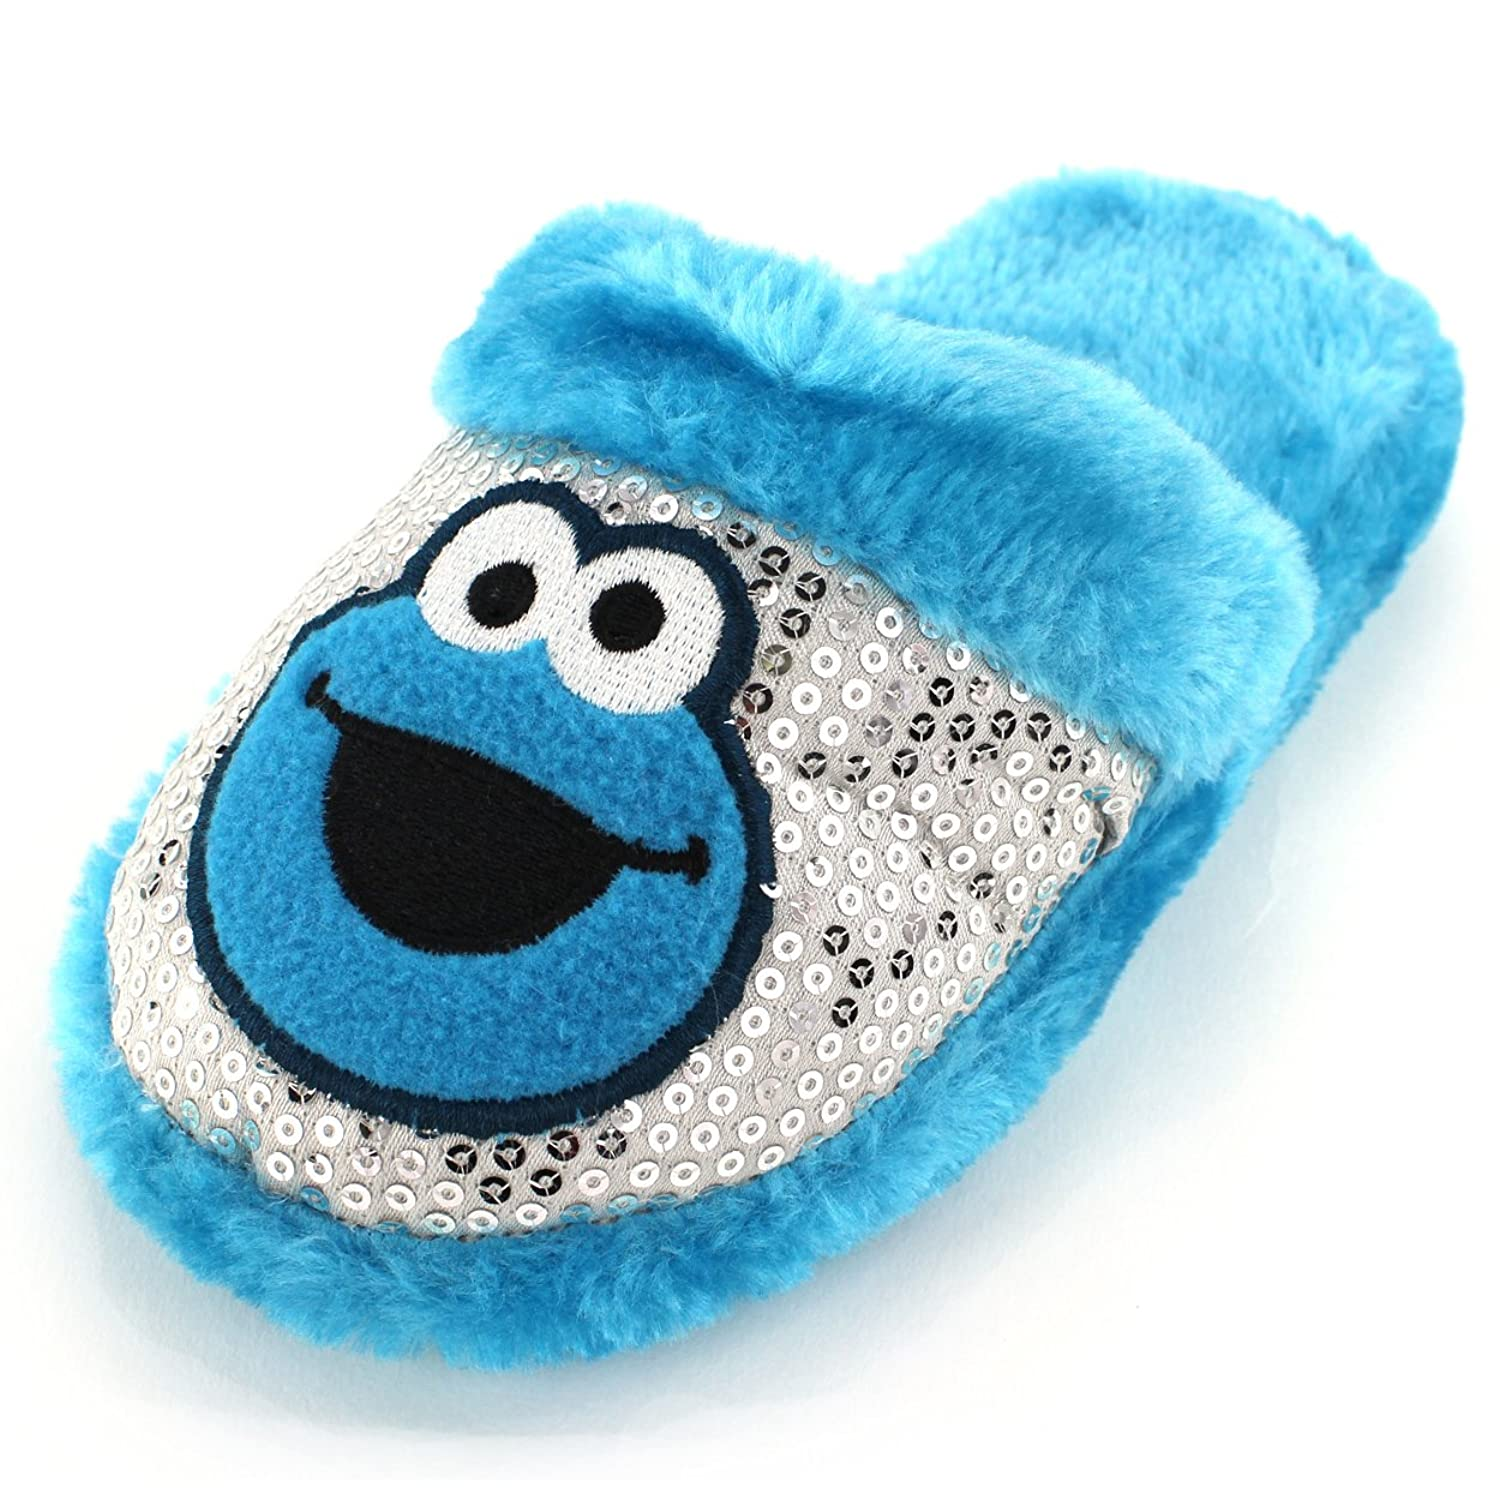 все цены на Cookie Monster Girls Blue Scuff Slippers онлайн